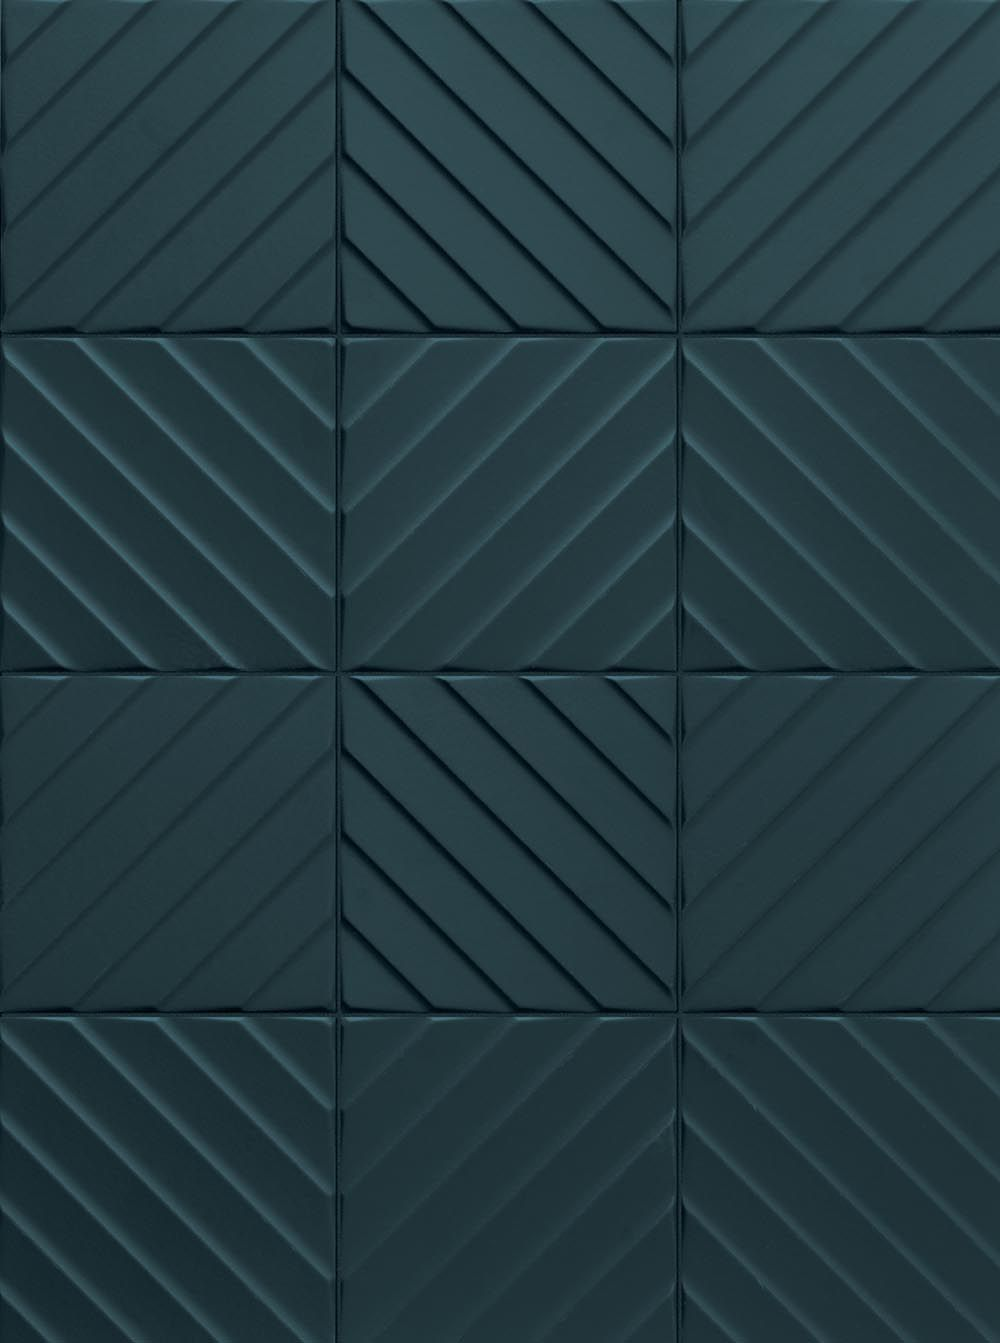 Multidimensional 3d Textured Ceramic Wall Tiles In 2019